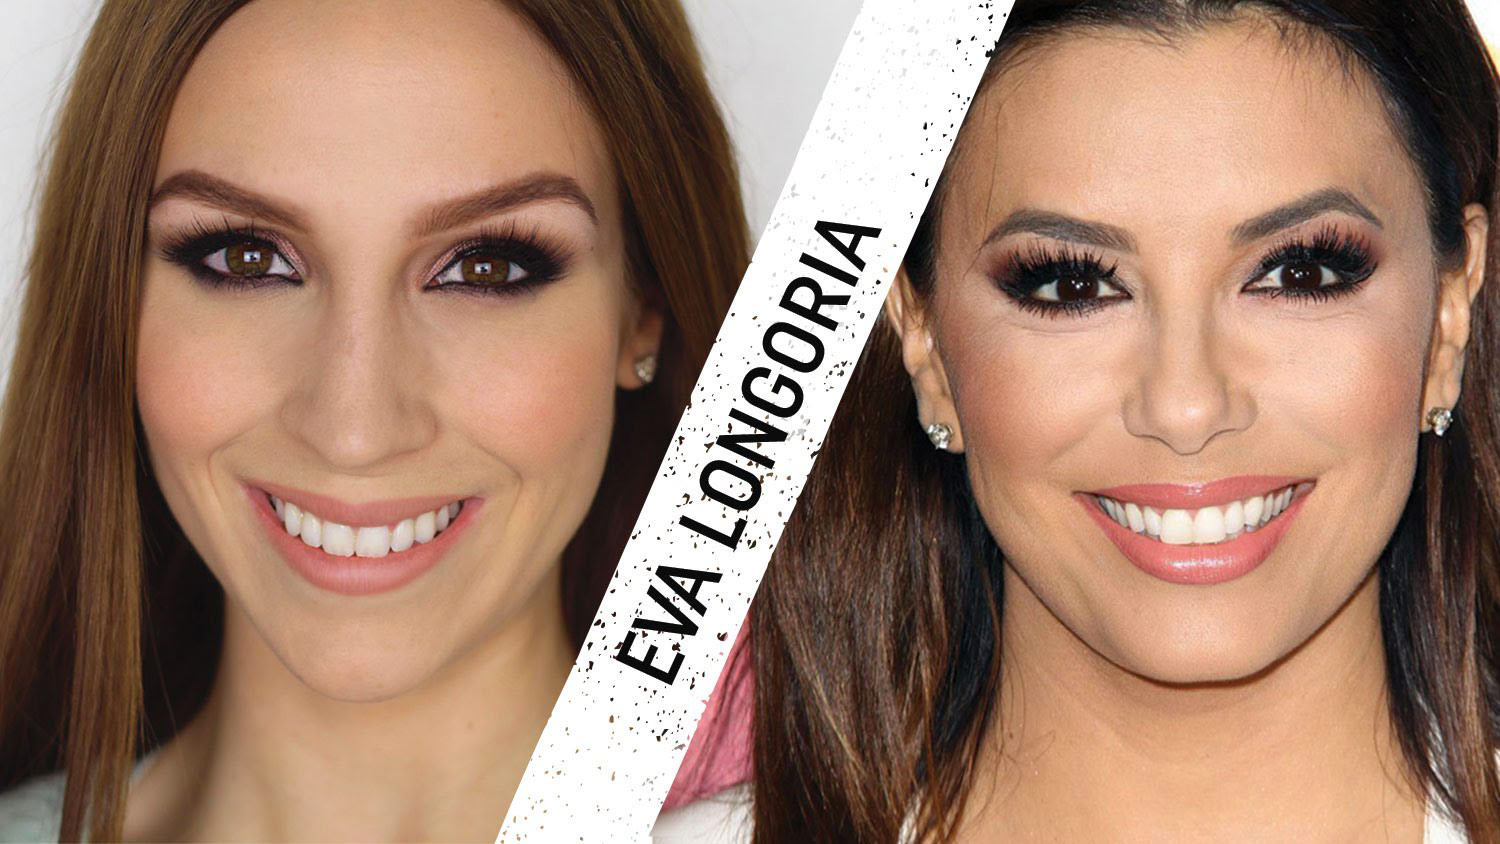 maquillage de star eva longoria maquillage cynthia. Black Bedroom Furniture Sets. Home Design Ideas